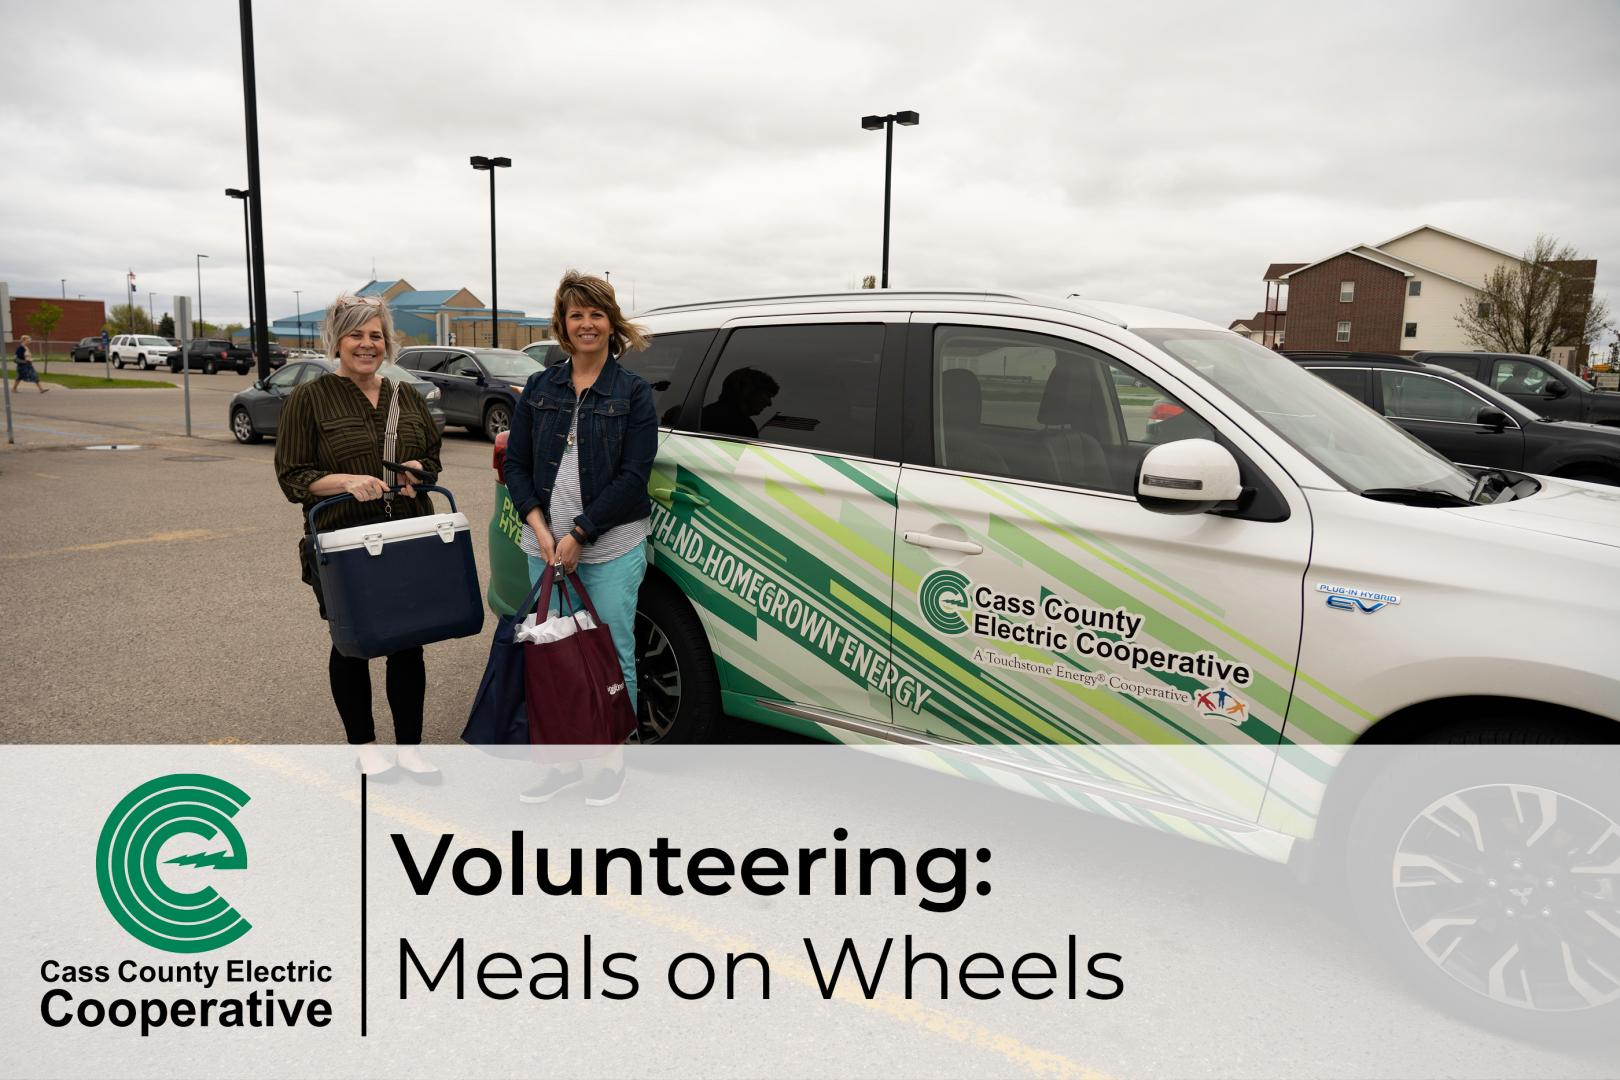 Volunteering for Meals on Wheels